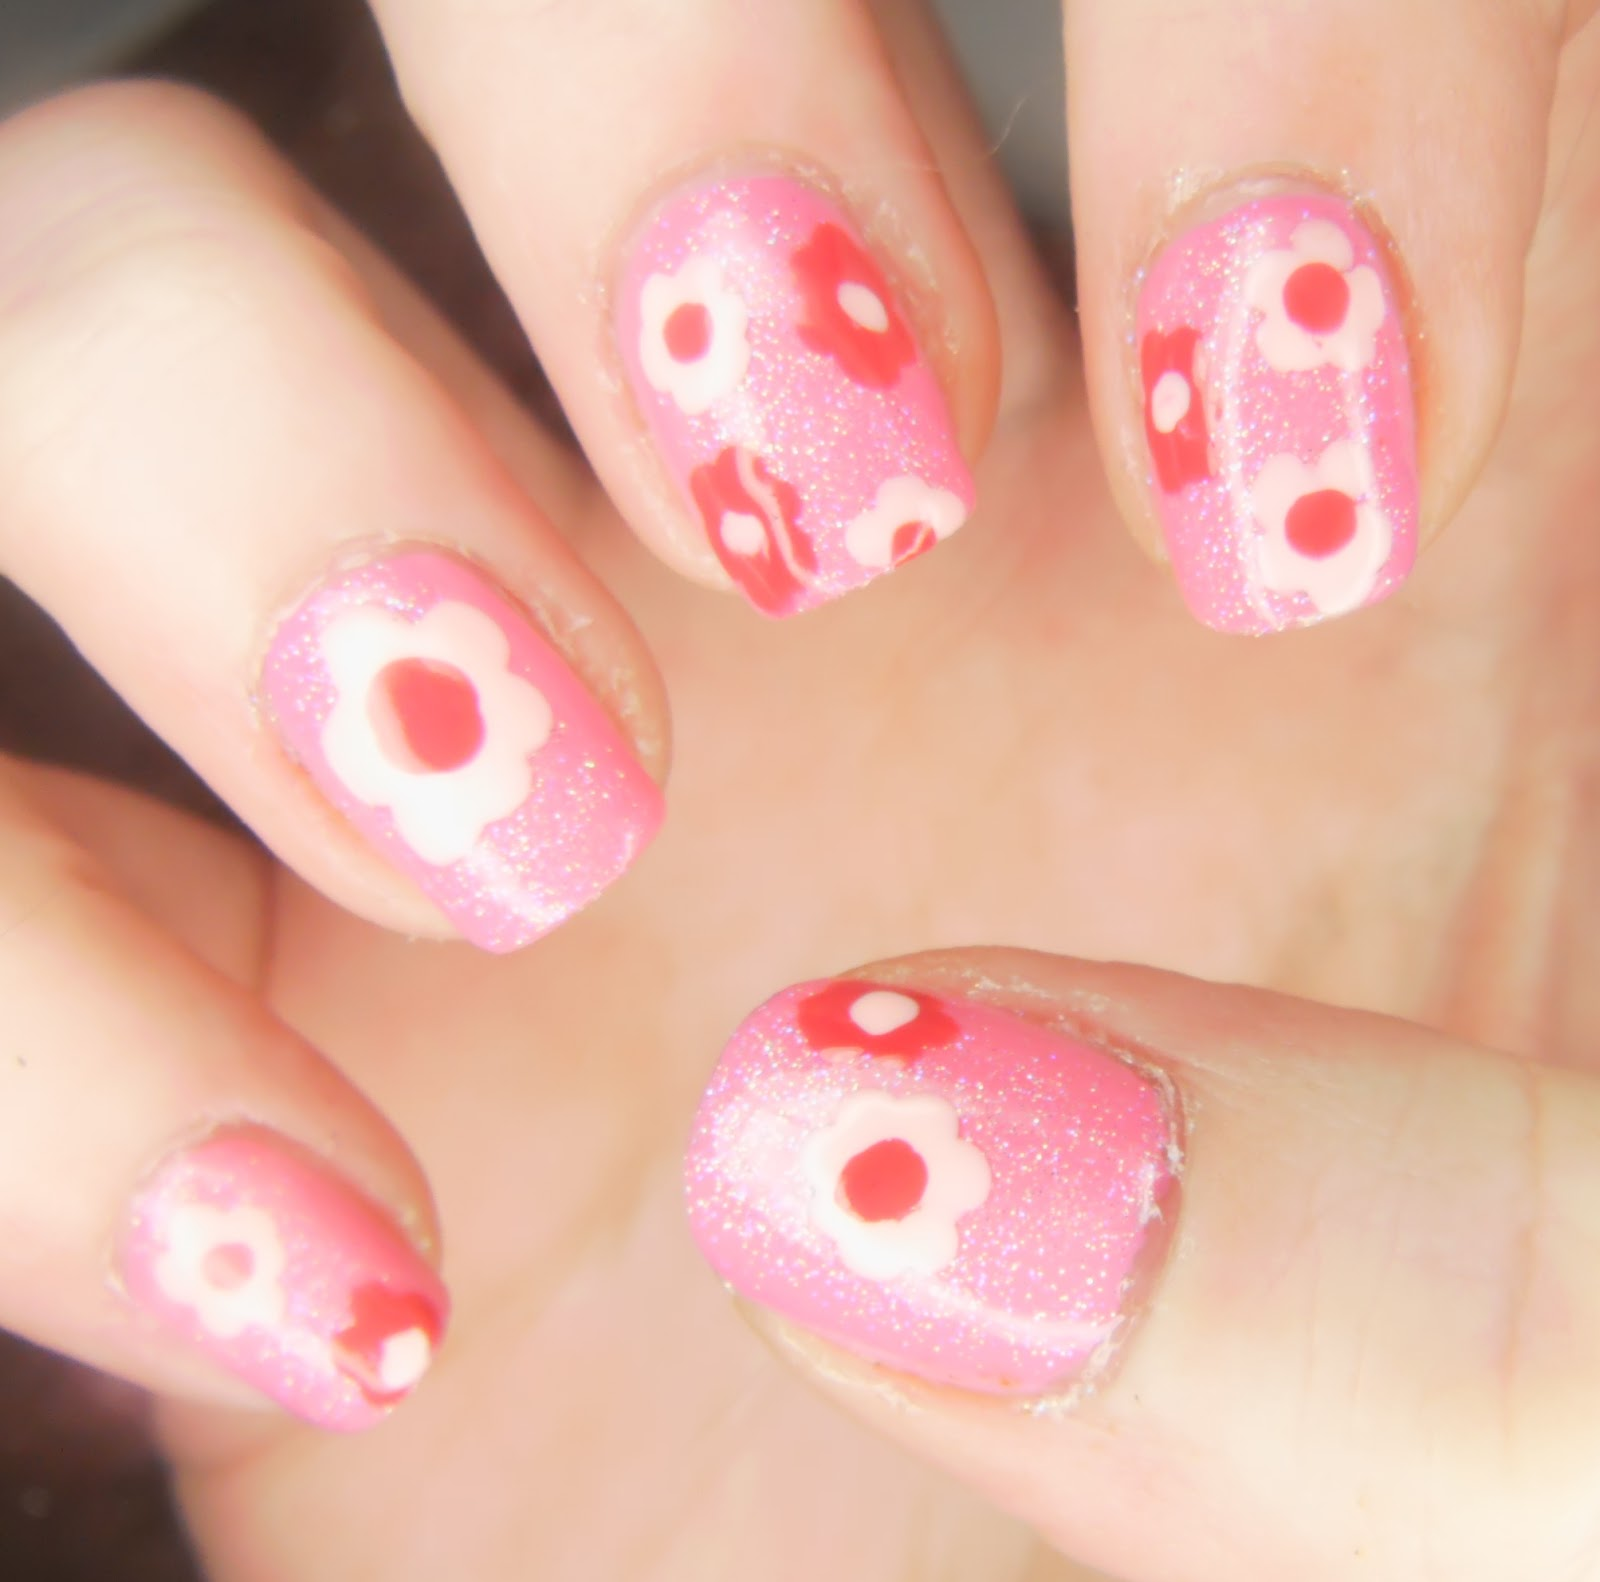 Girly Nail Art: SpecialGirl Nails: Girly Girl Nail Art Challenge: Think Pink